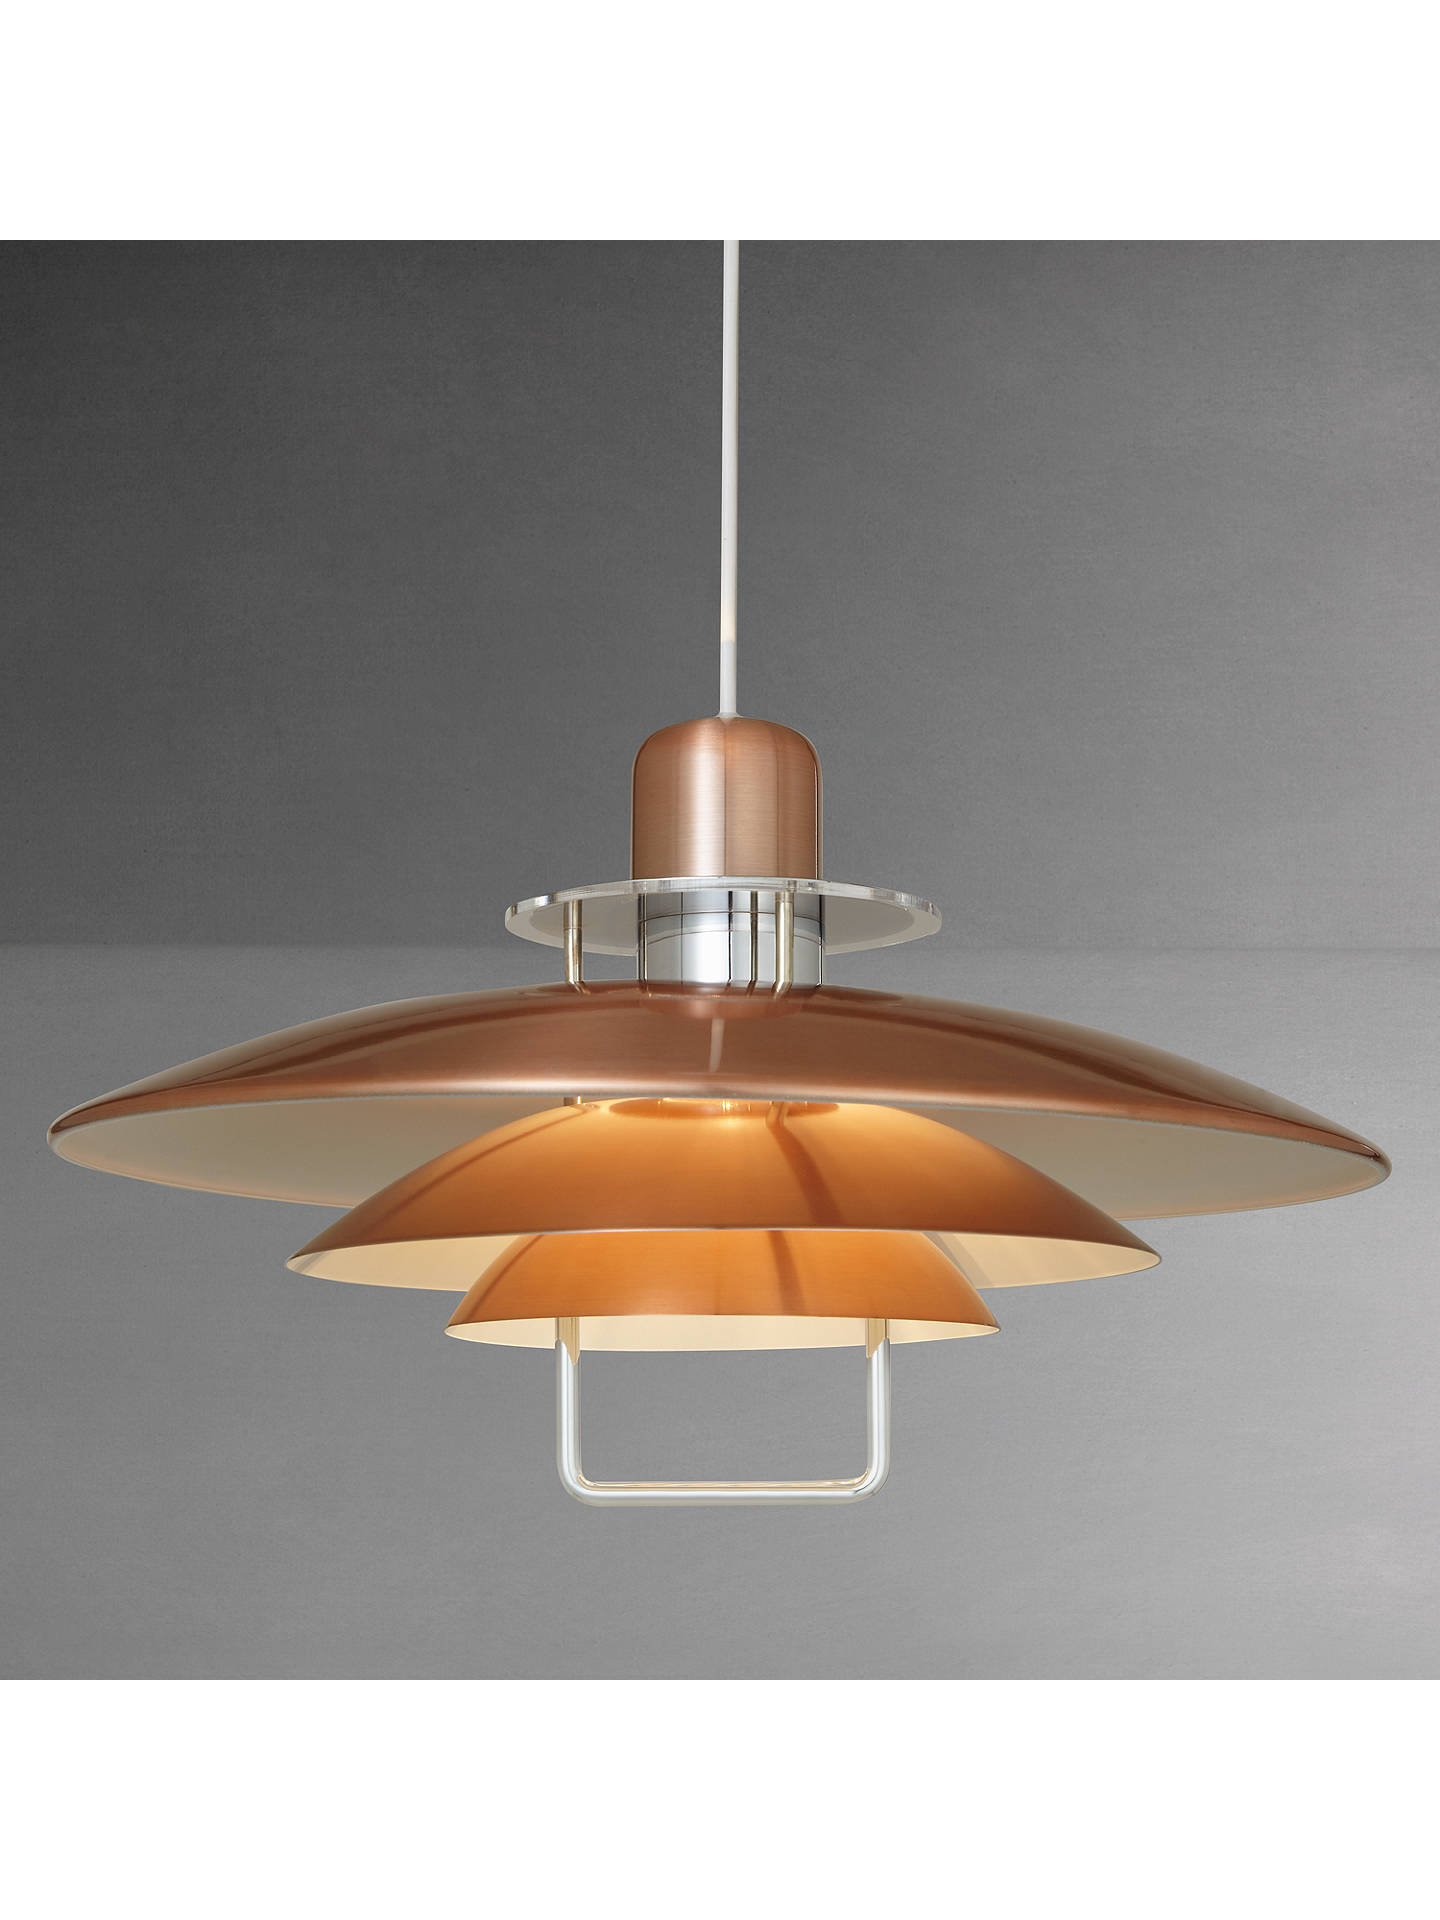 Belid Felix Rise And Fall Pendant Light Copper Online At Johnlewis